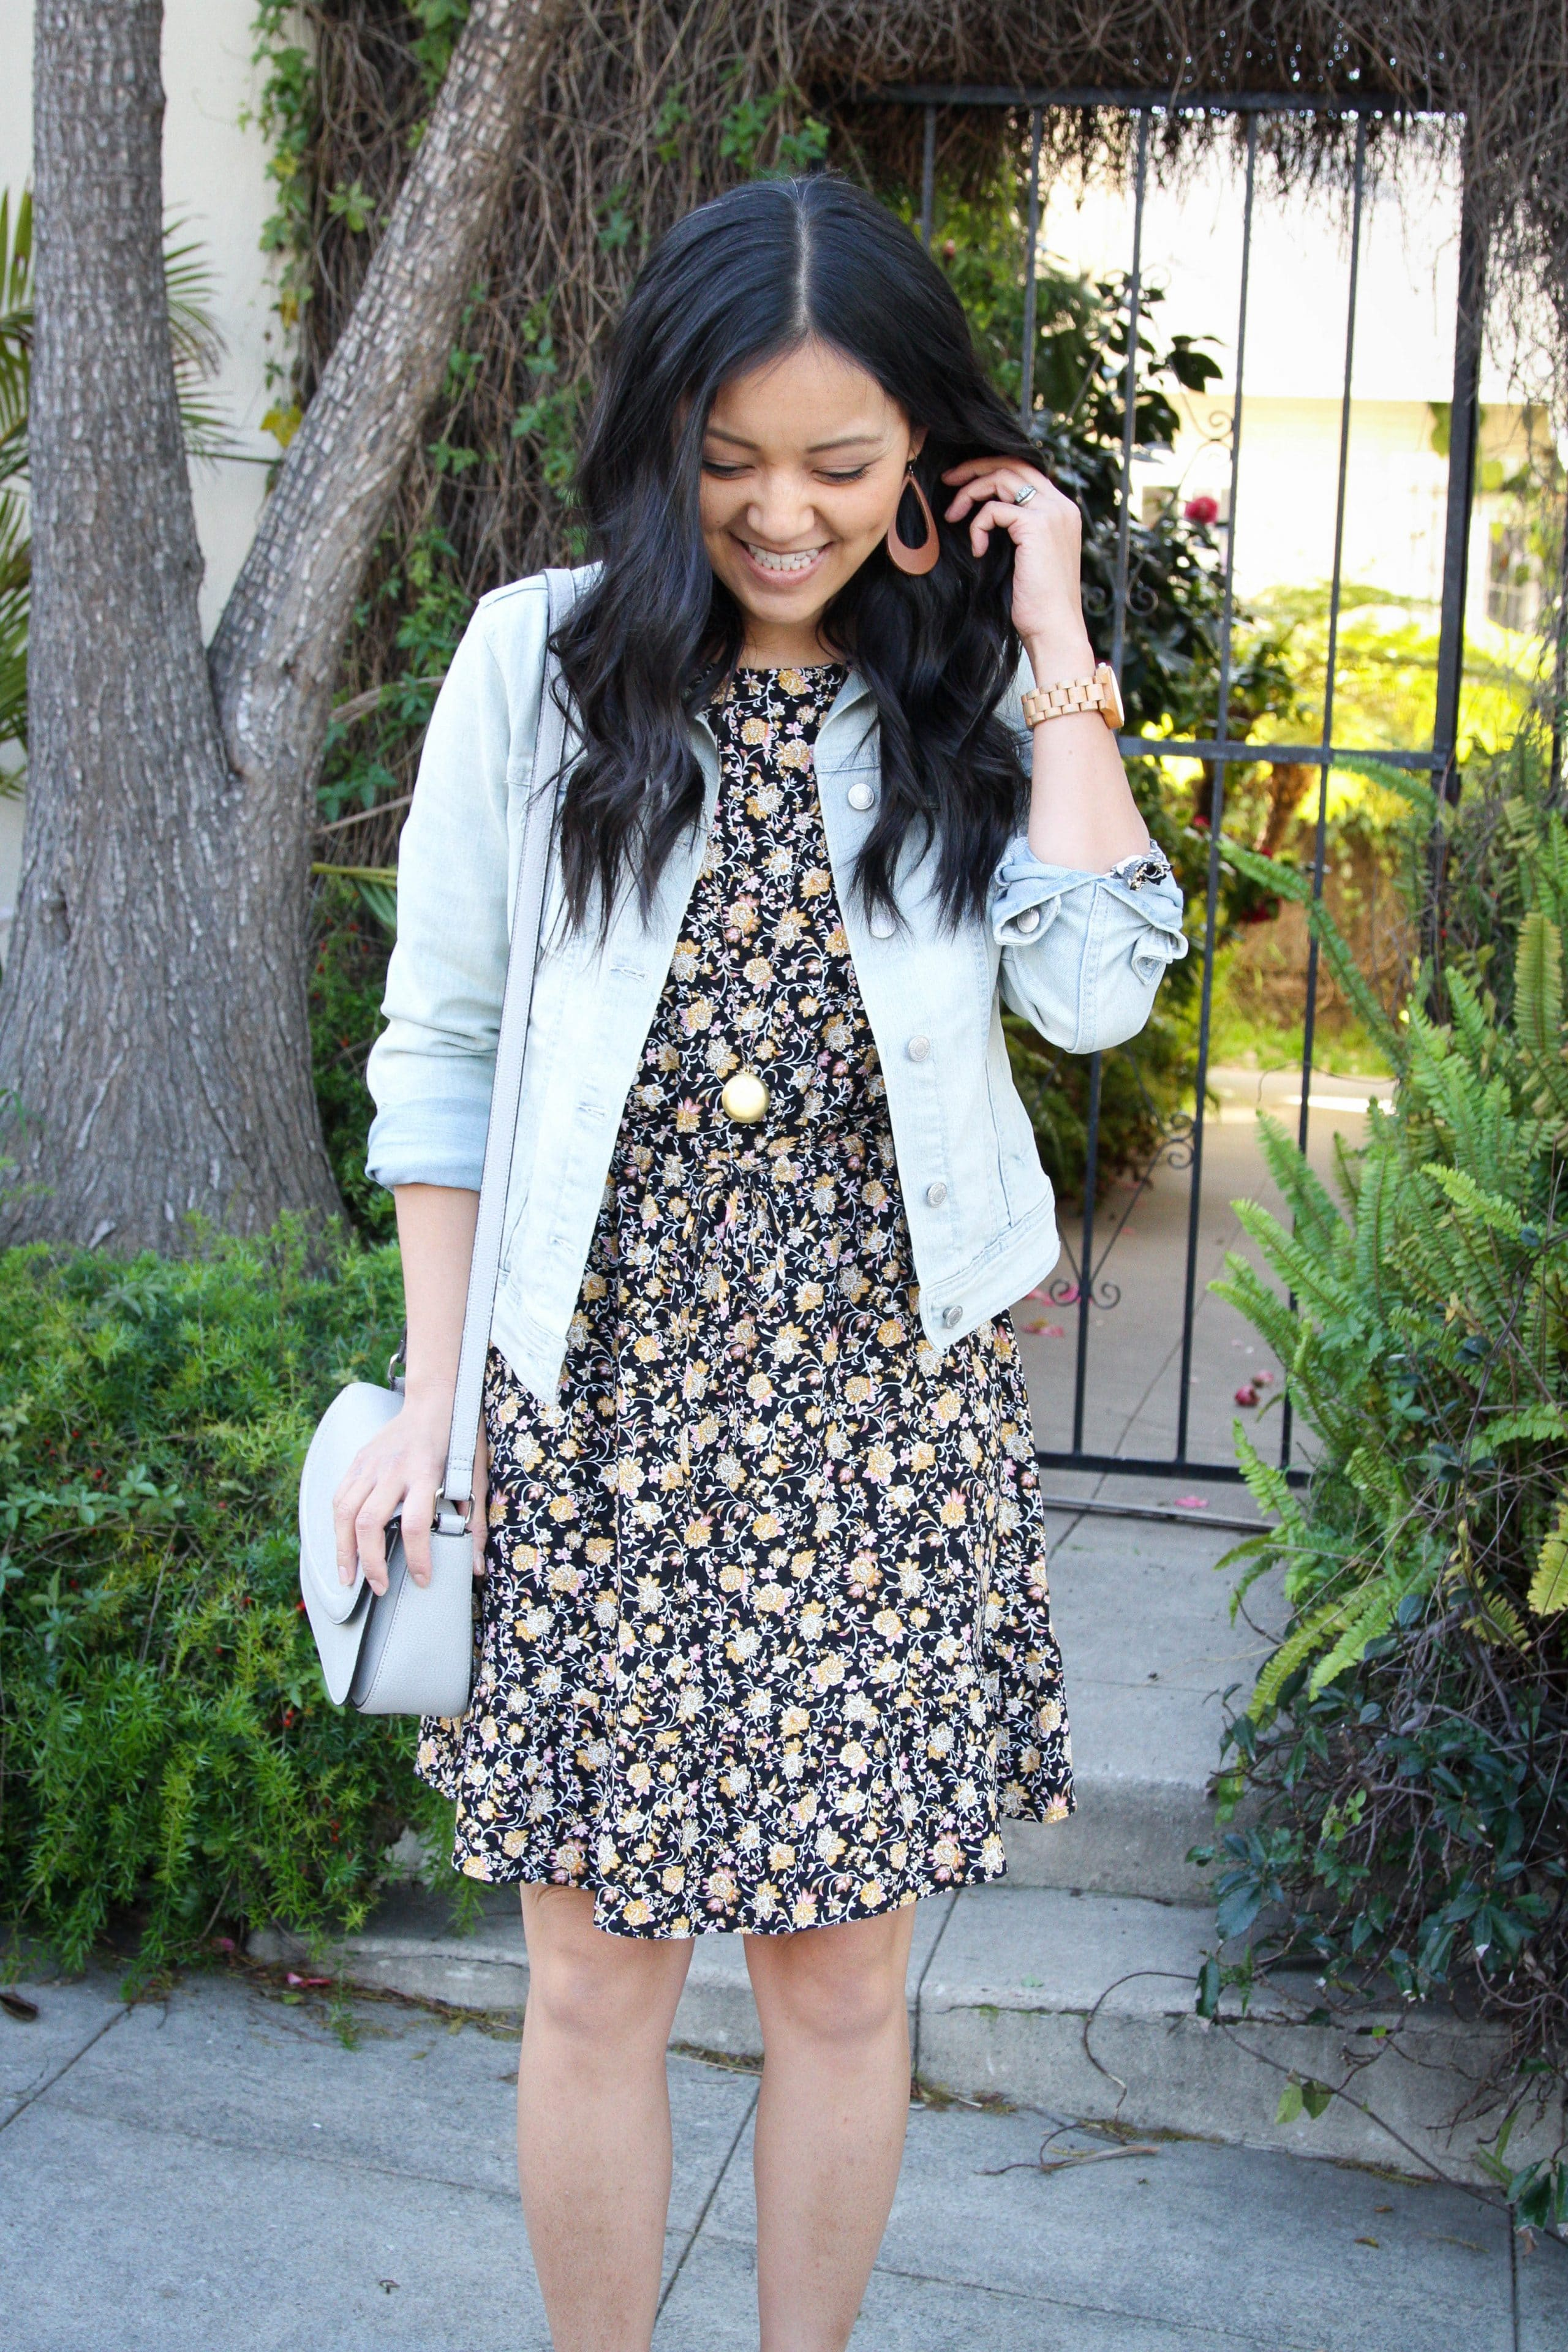 Denim Jacket + Grey Crossbody Bag + Black Floral Dress + Statement Necklace + Earrings